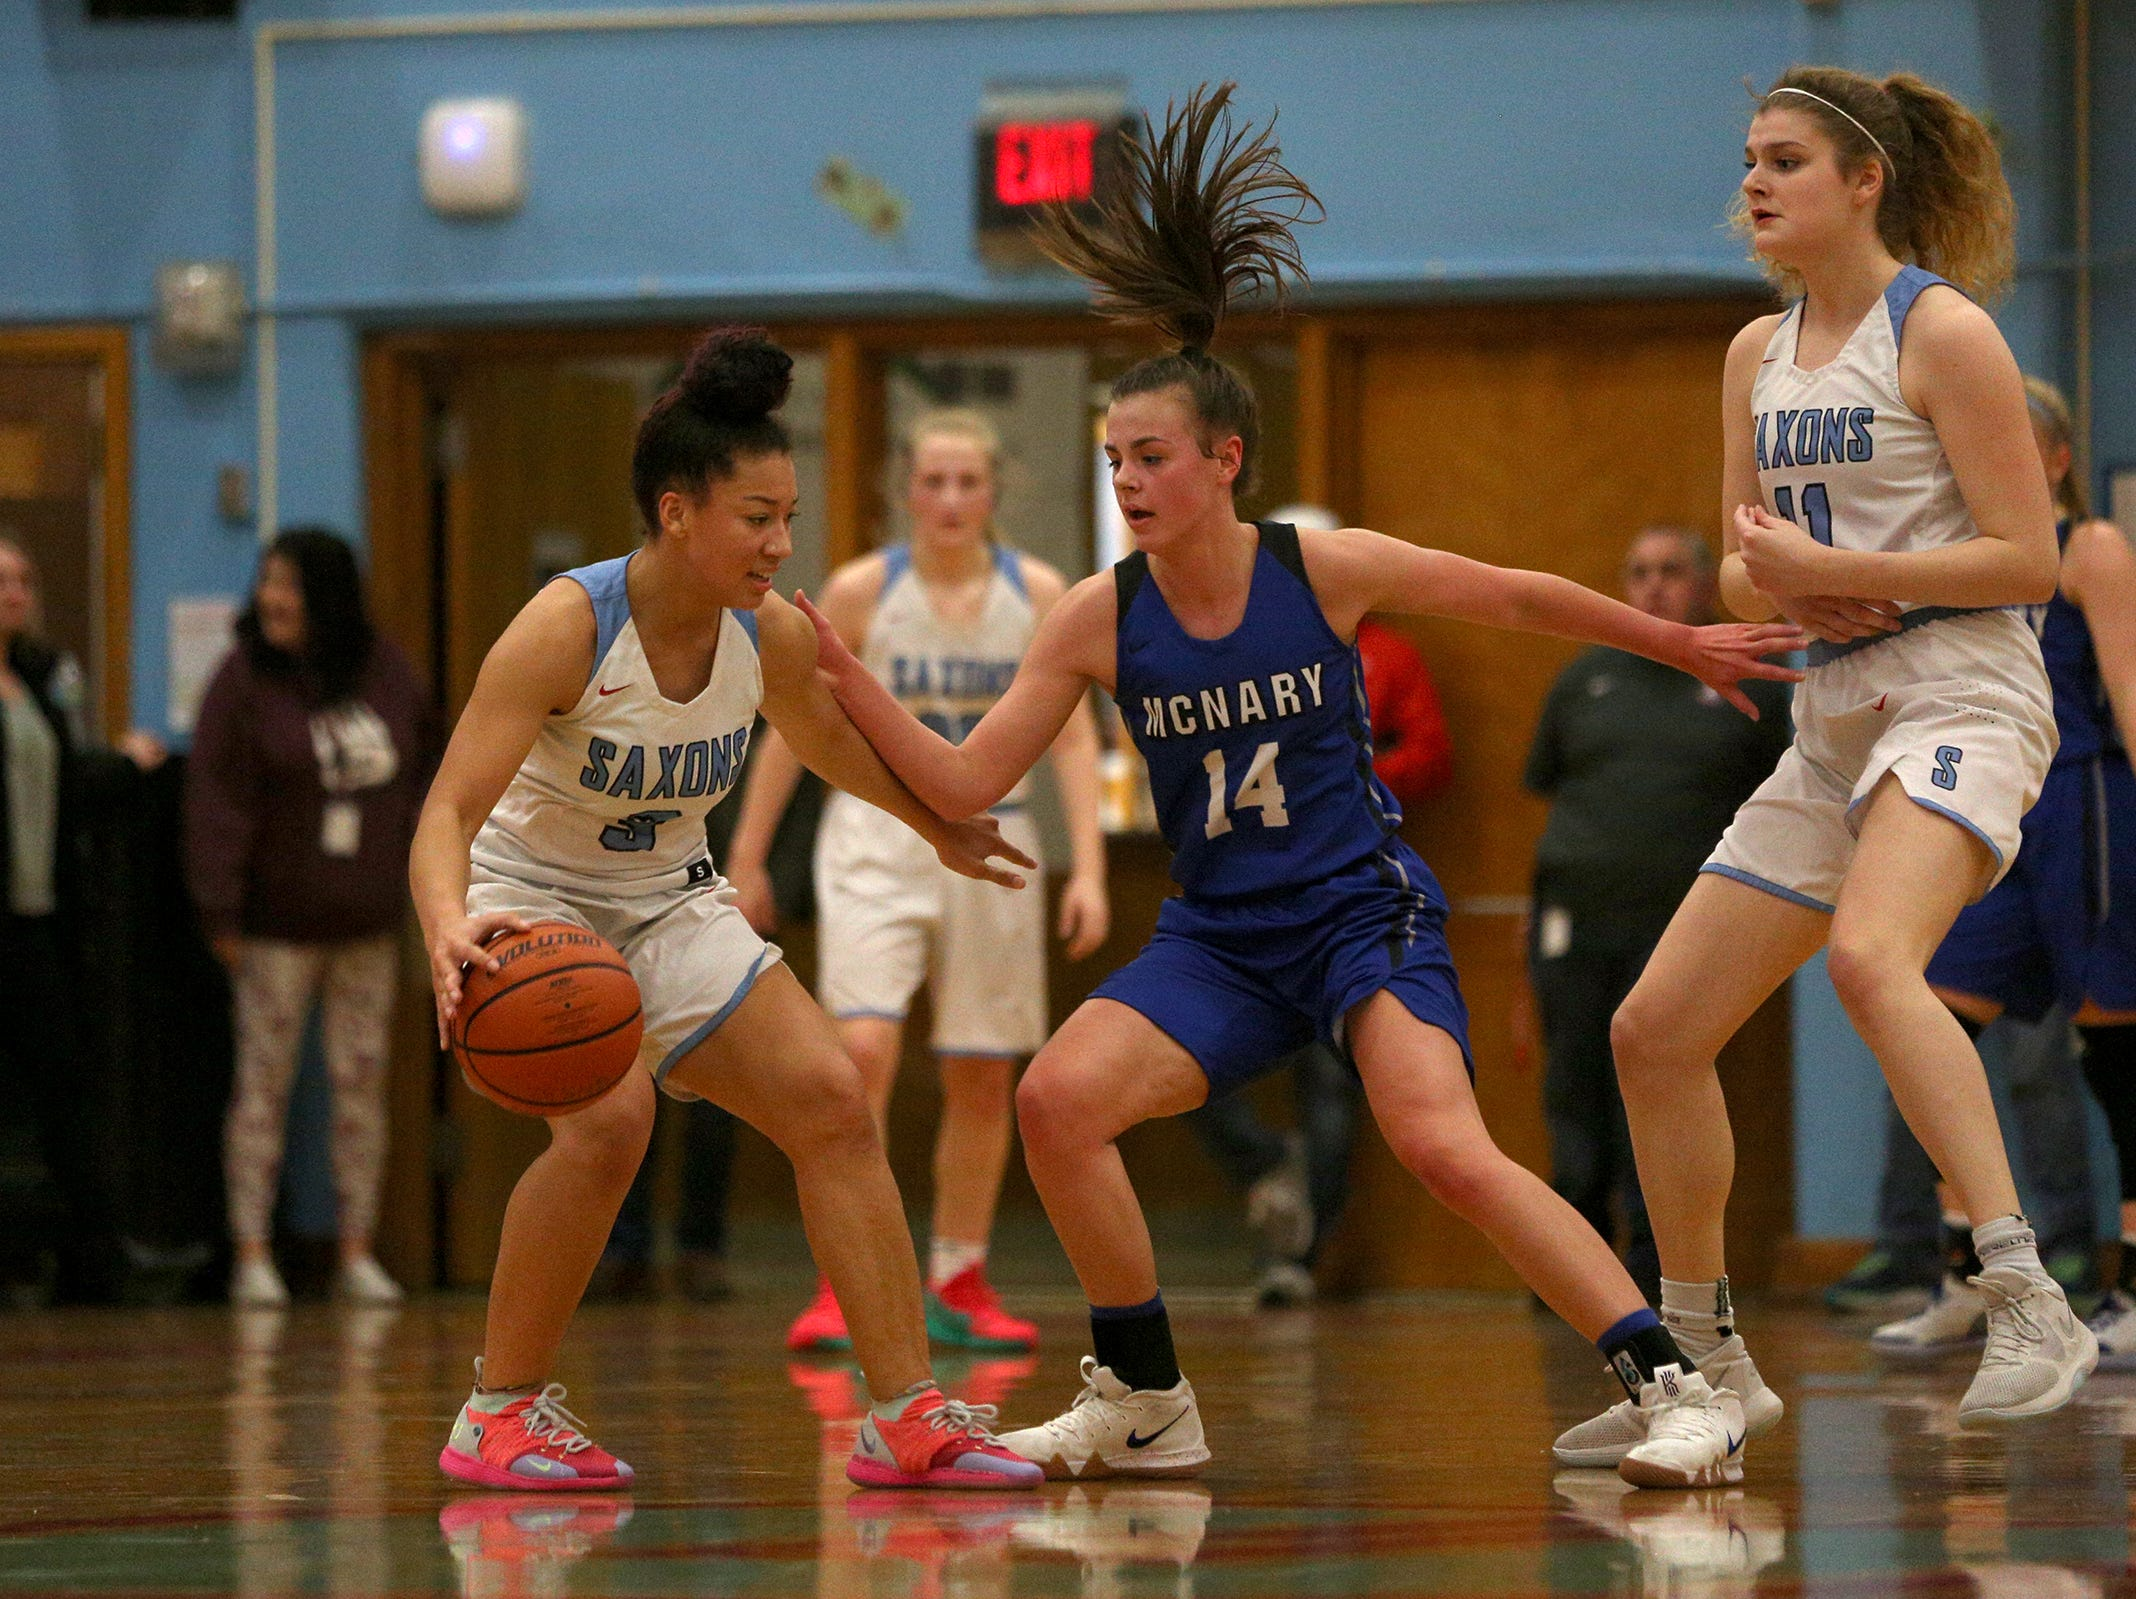 South Salem's Maylah Bolden (3) protects the ball during the South Salem High School girls basketball game against McNary High School in Salem on Thursday, Jan. 31, 2019.